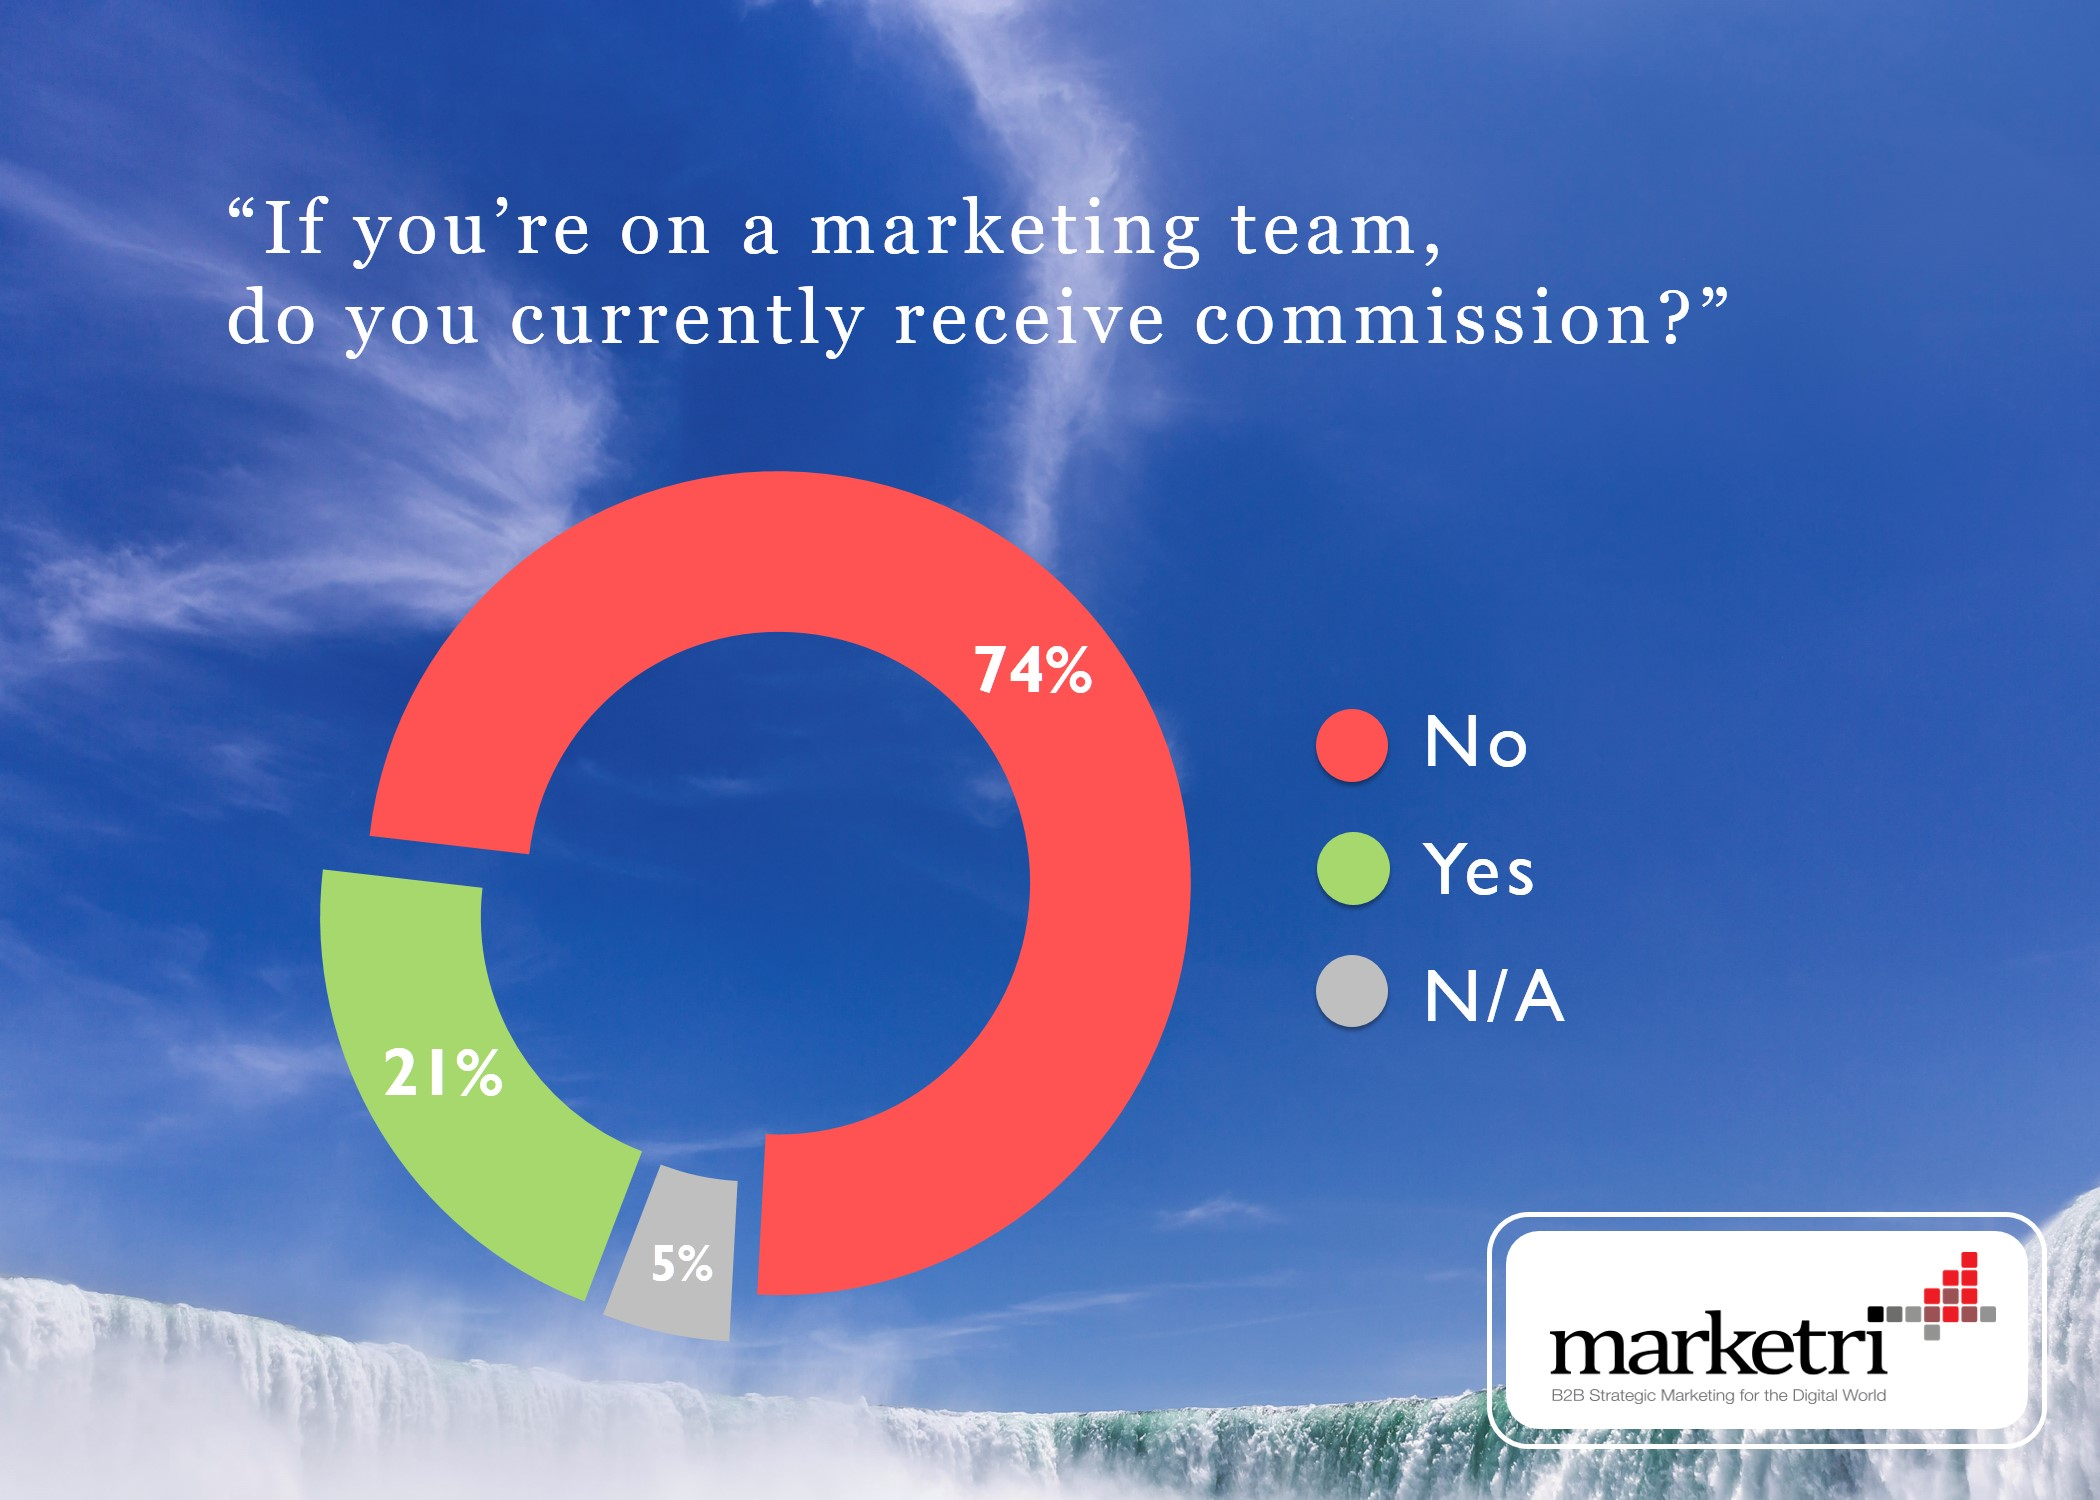 Poll: Should Marketing Commission Be a Standard Practice?